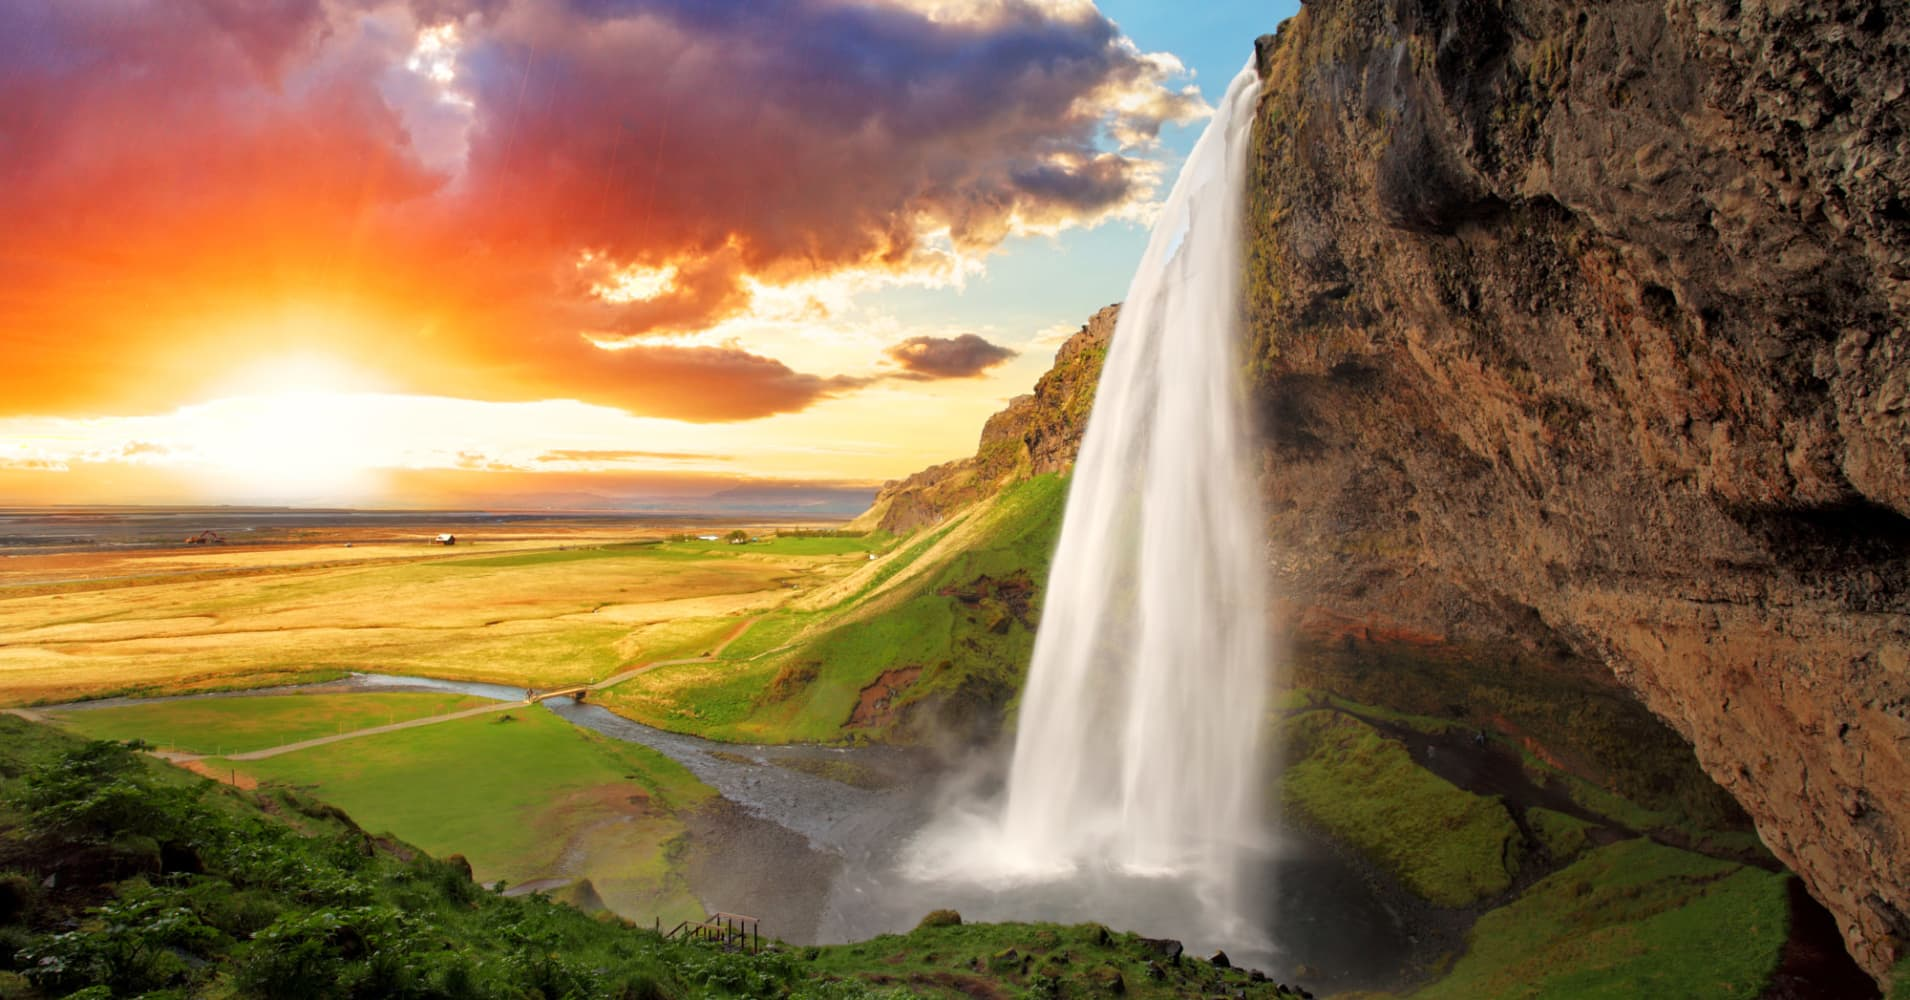 Seljalandsfoss is one of the most beautiful waterfalls in Iceland.